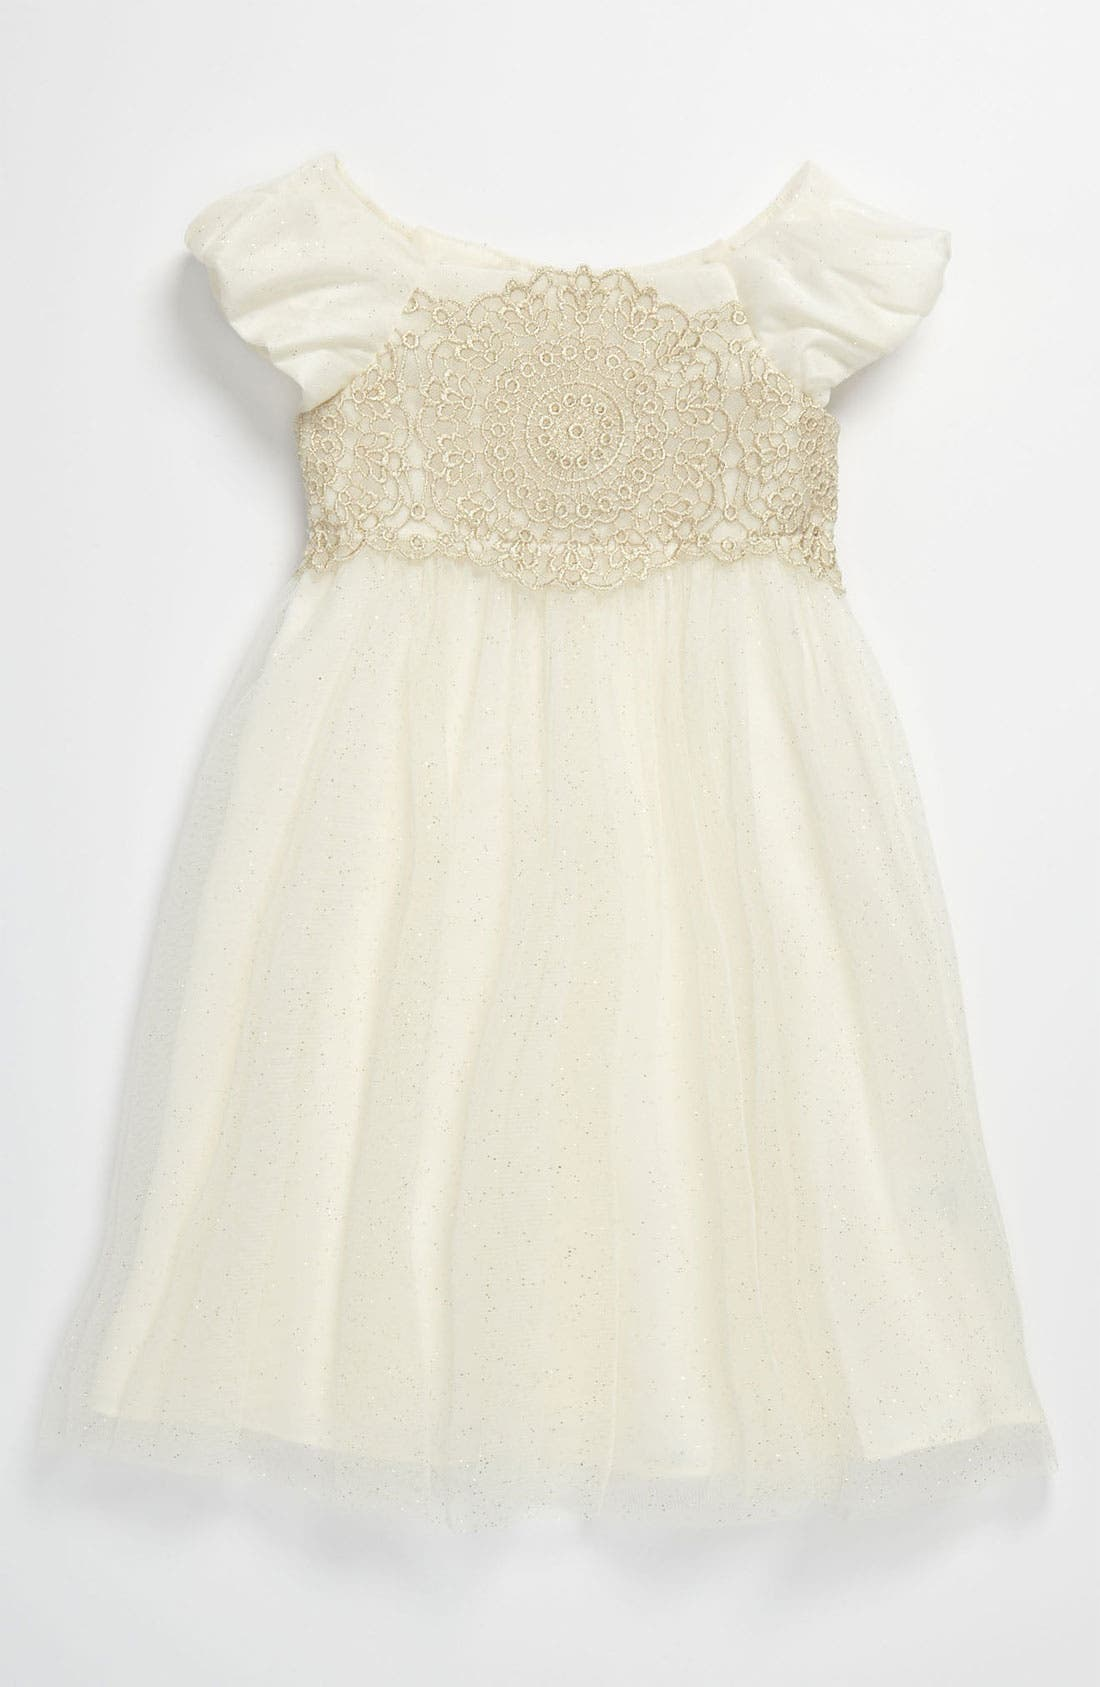 Alternate Image 1 Selected - Sweet Heart Rose Lace Empire Waist Glitter Dress (Toddler)